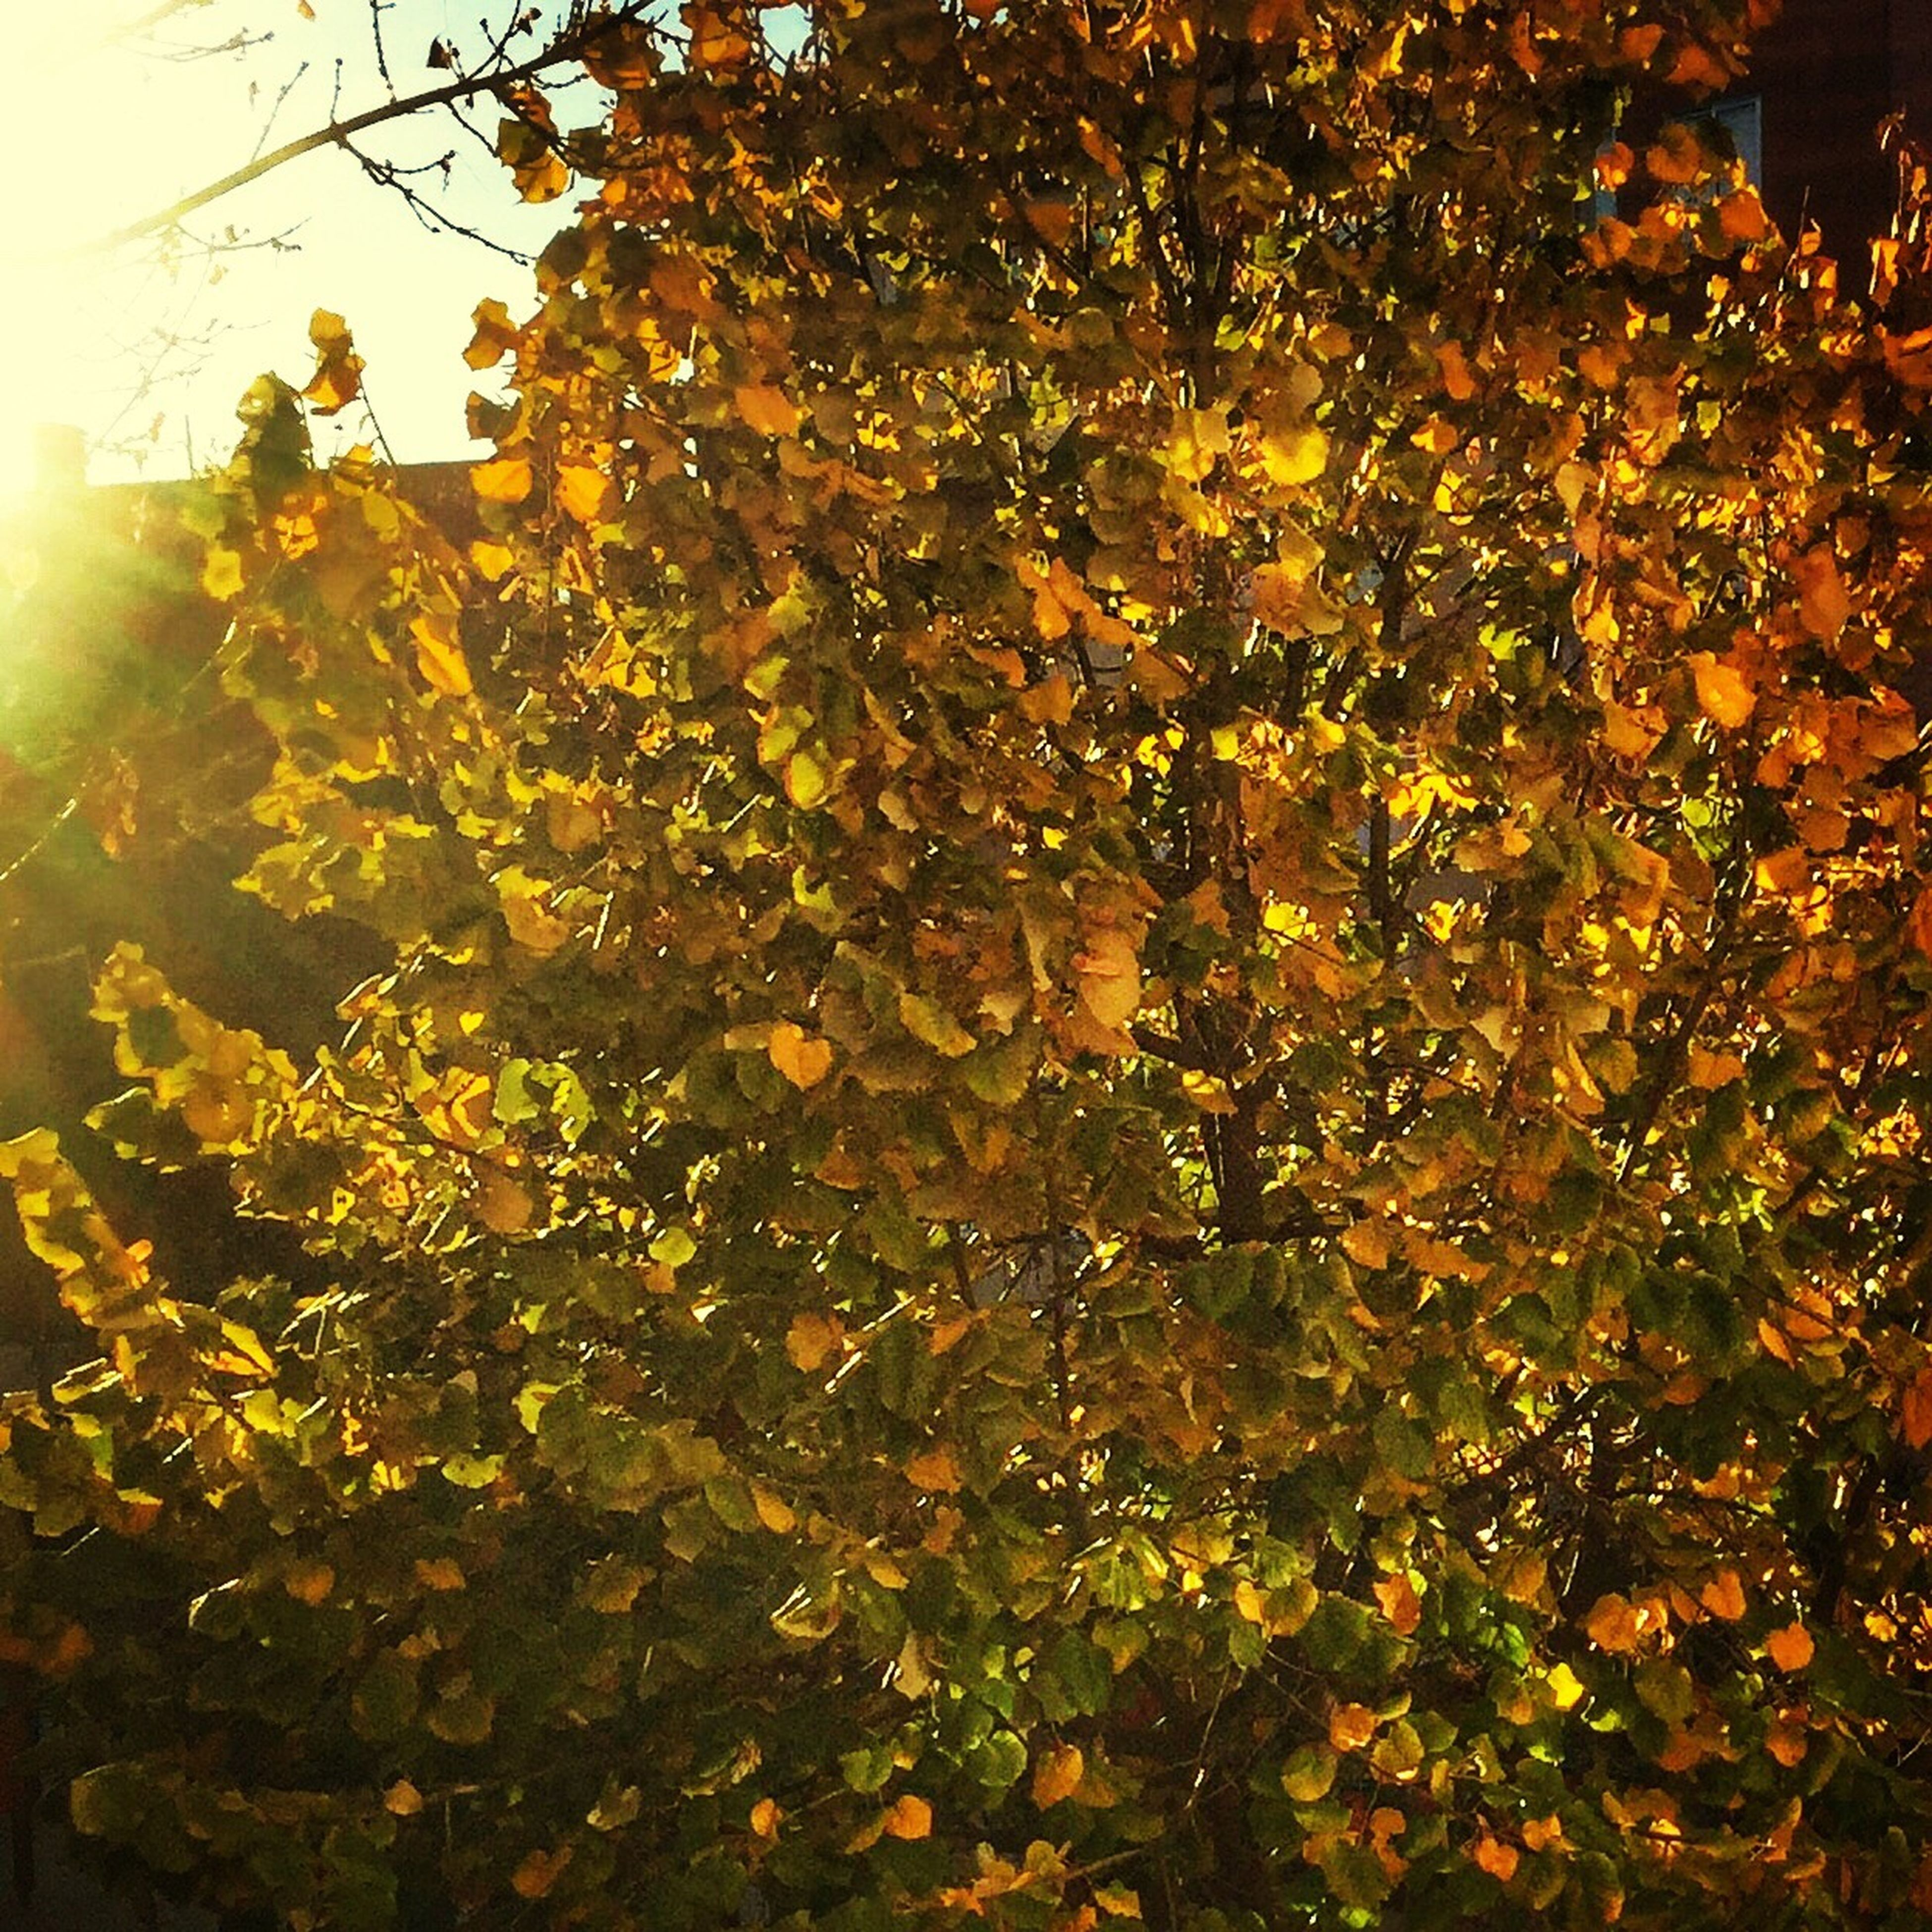 growth, tree, branch, nature, beauty in nature, flower, yellow, sunlight, plant, leaf, freshness, low angle view, season, tranquility, day, outdoors, no people, fragility, autumn, orange color